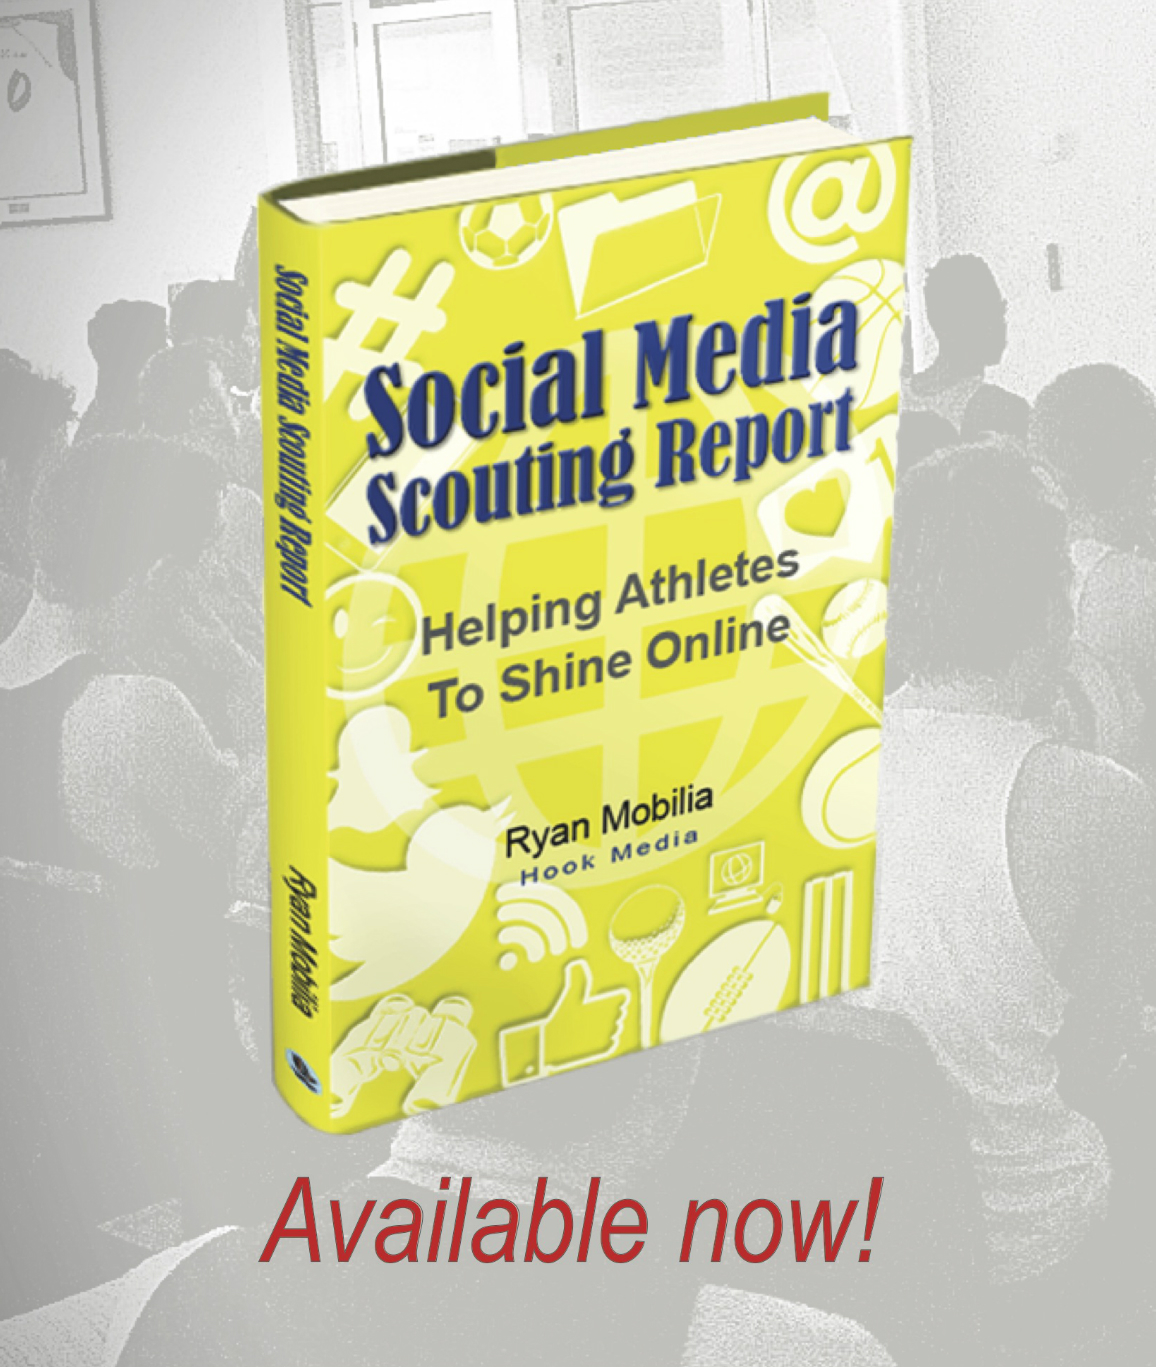 Social Media Scouting Report - Available now!